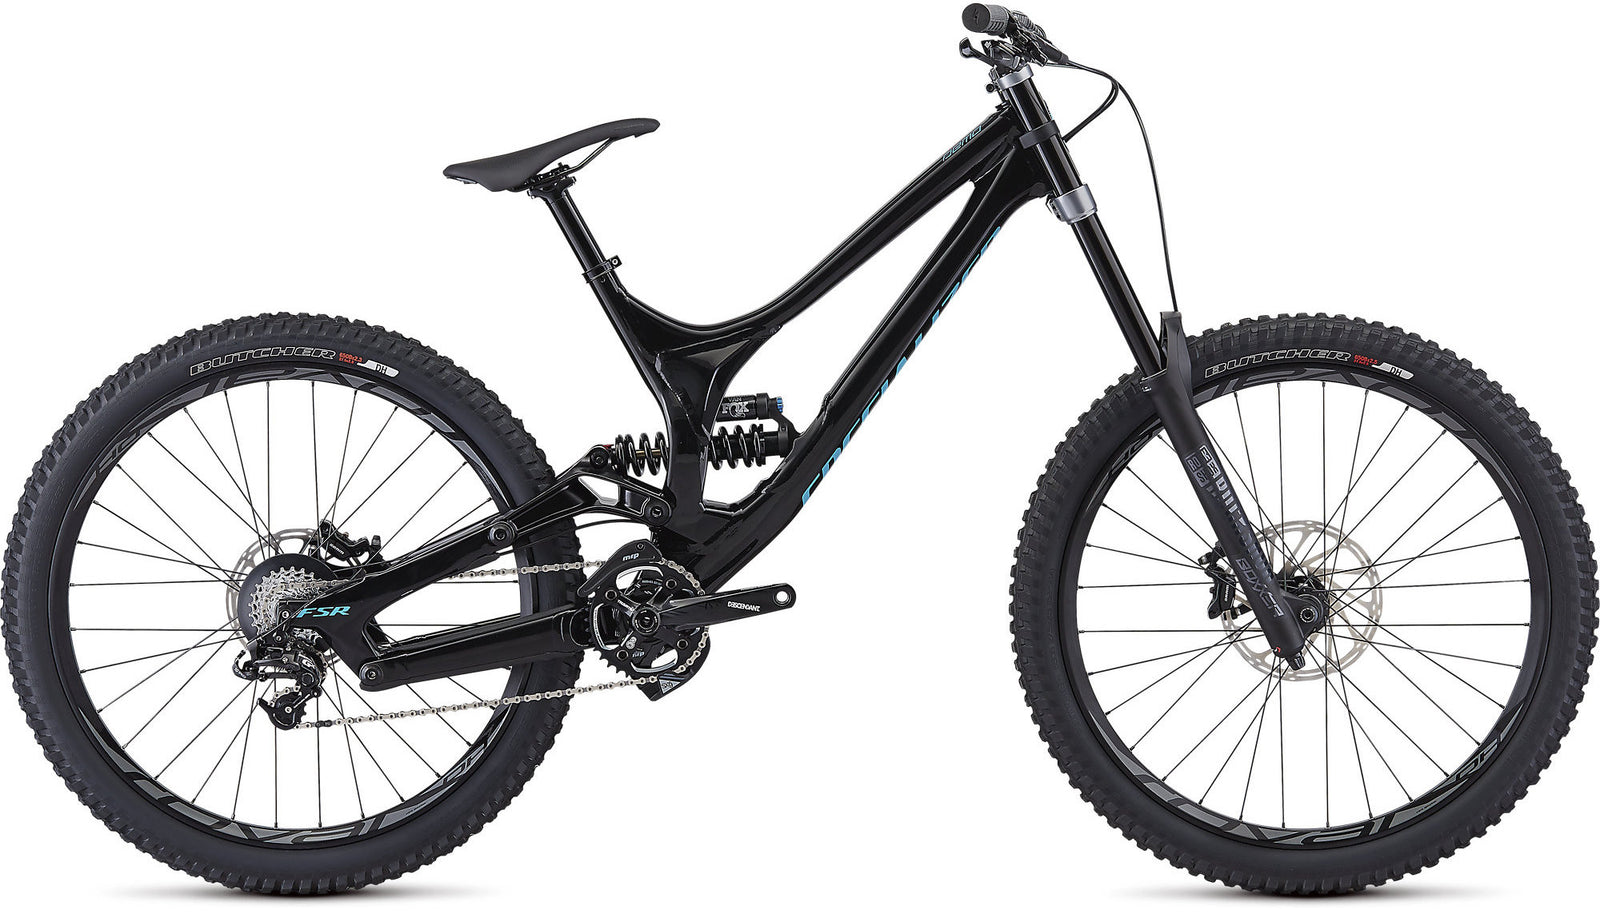 2019 Demo Alloy 27.5